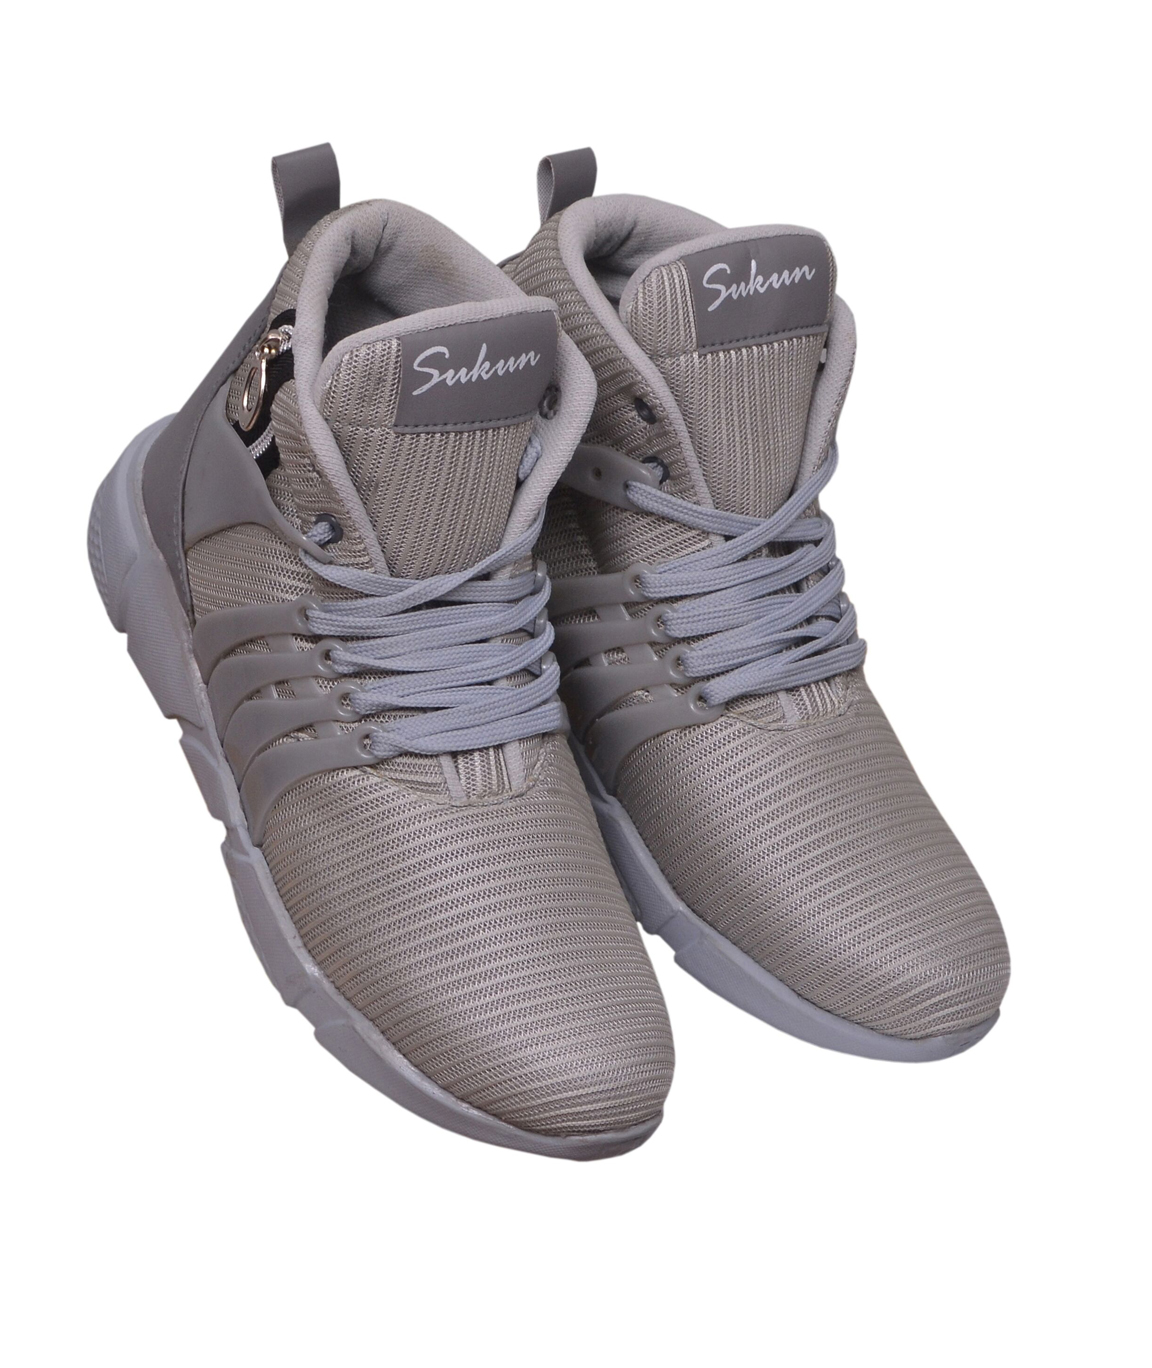 SukunSports Sneaker Shoes-GREY